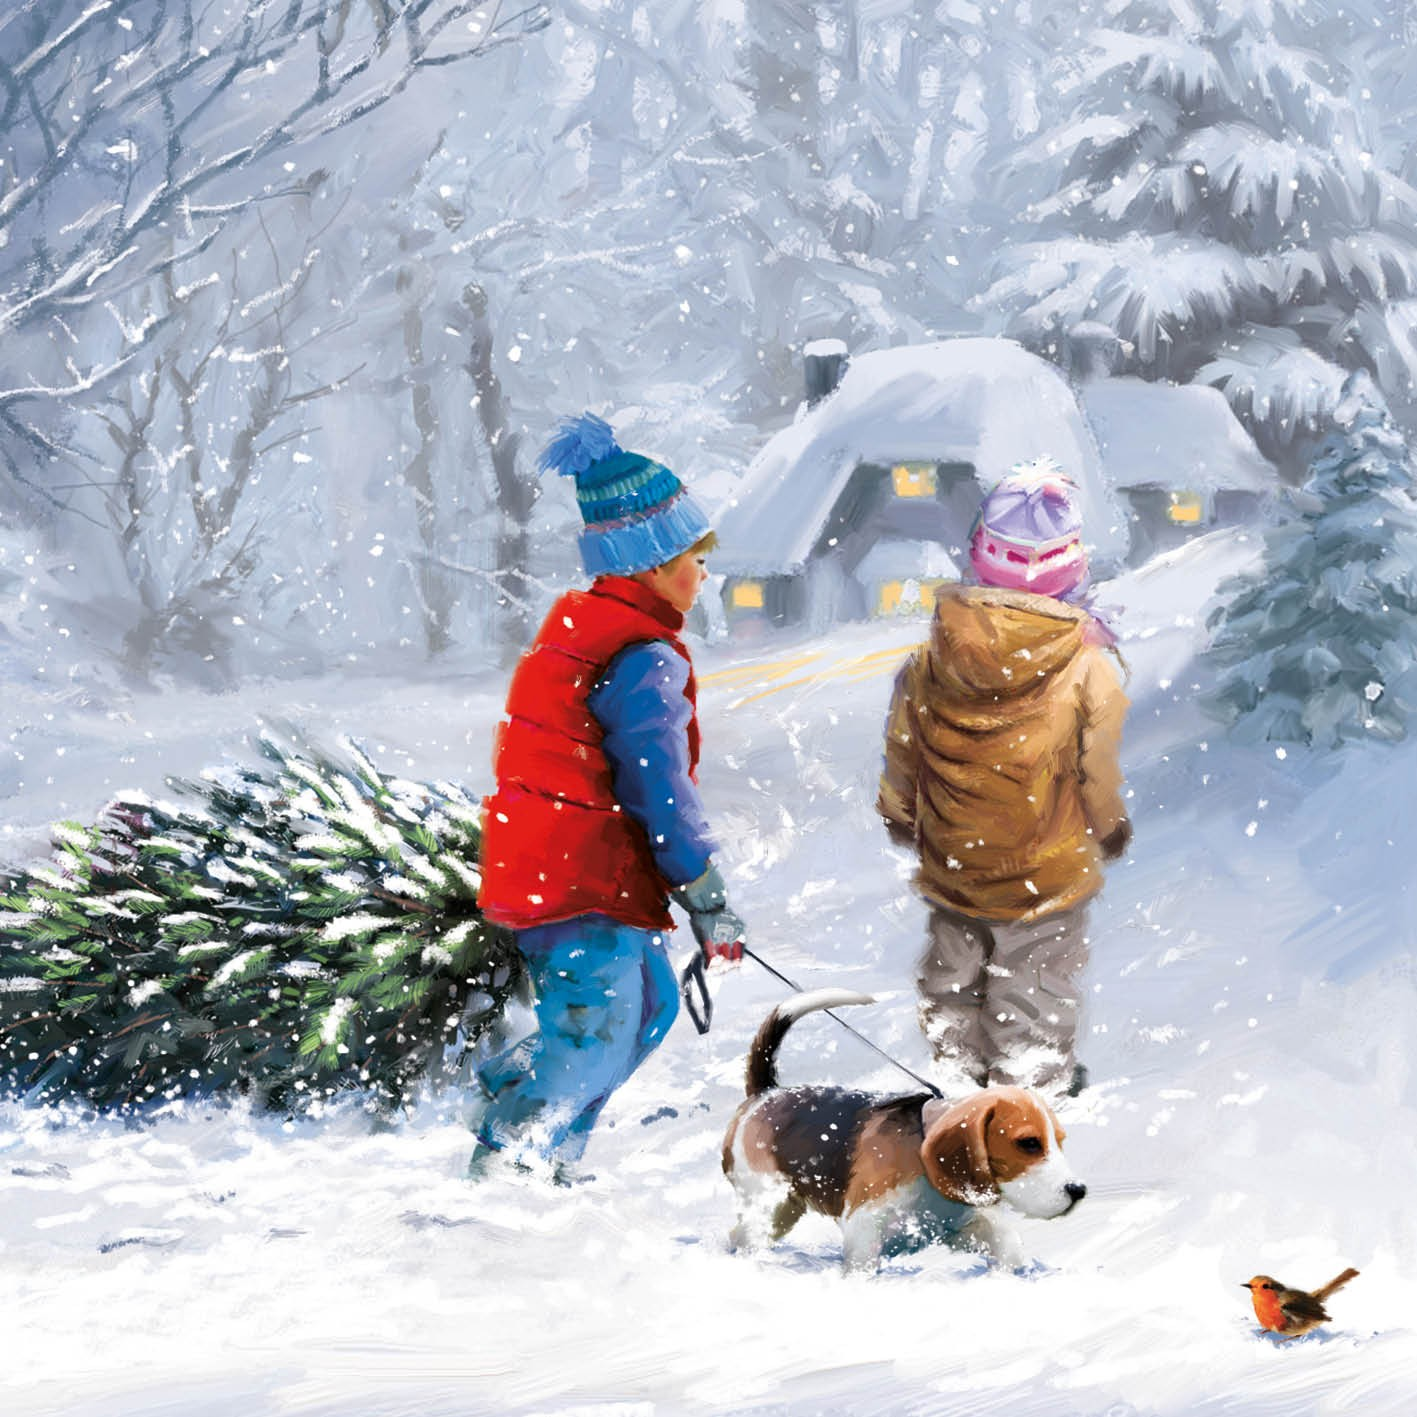 0b048f46b6e8 Kids in Snow - Christmas Card - Charity Cards